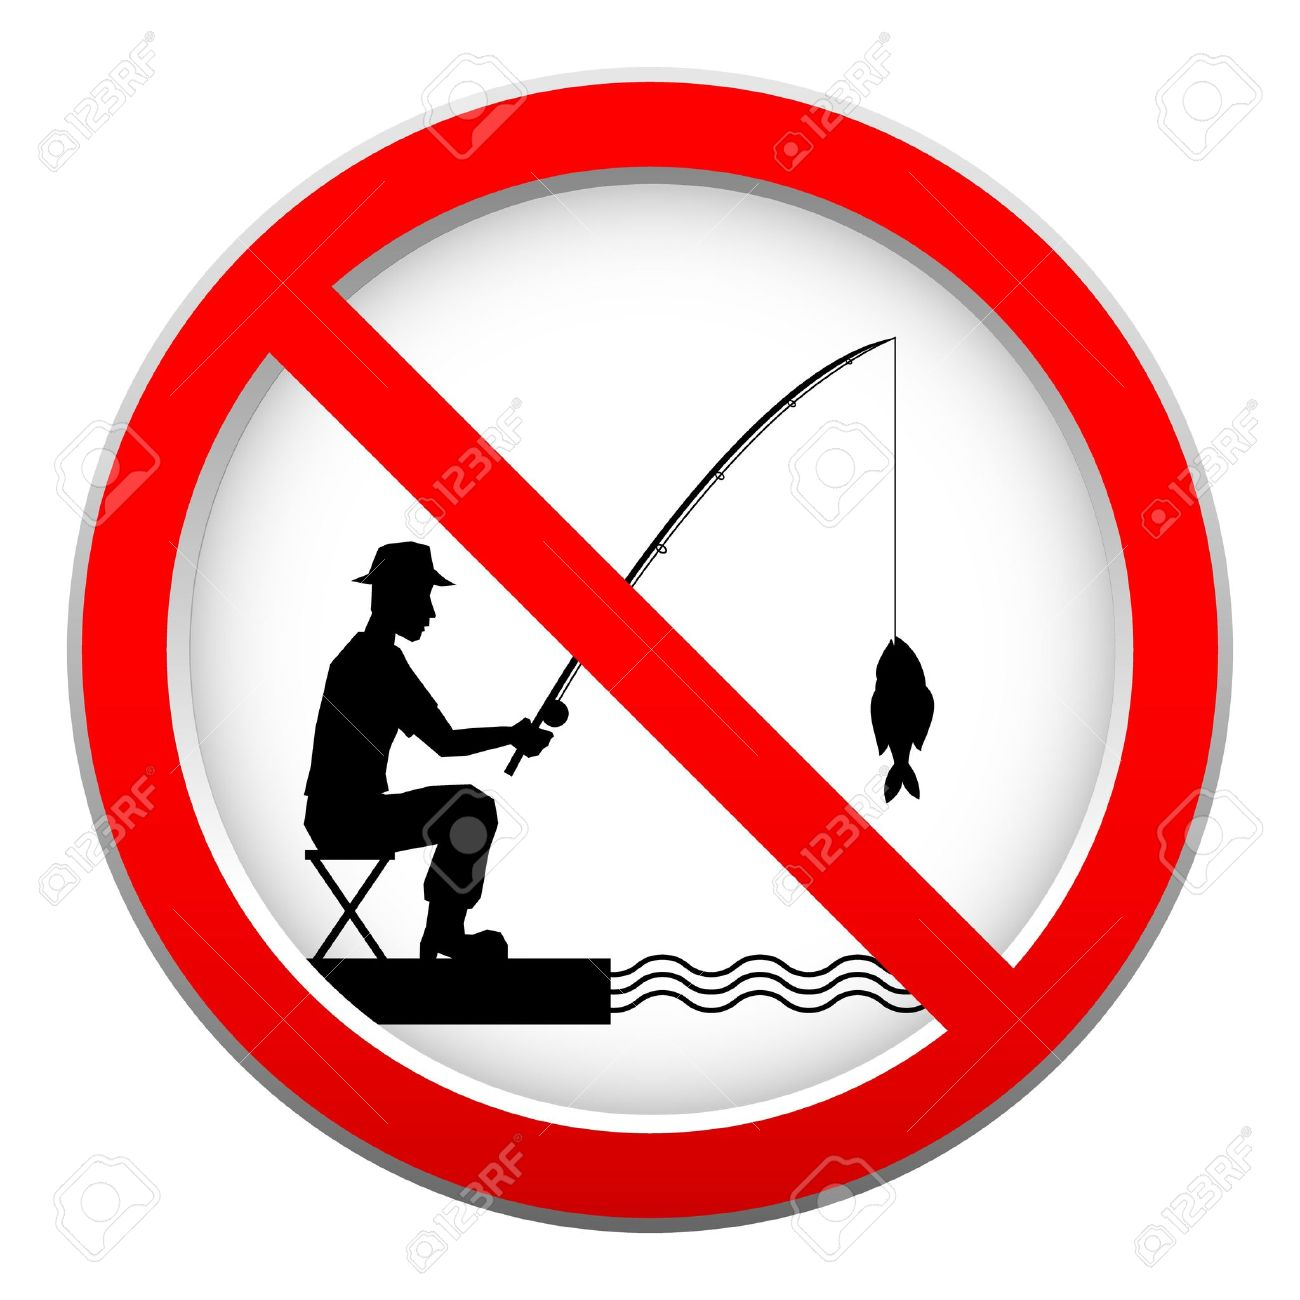 Image result for GOOGLE CLIP ART OF SIGN OF NO FISHING ALLOWED